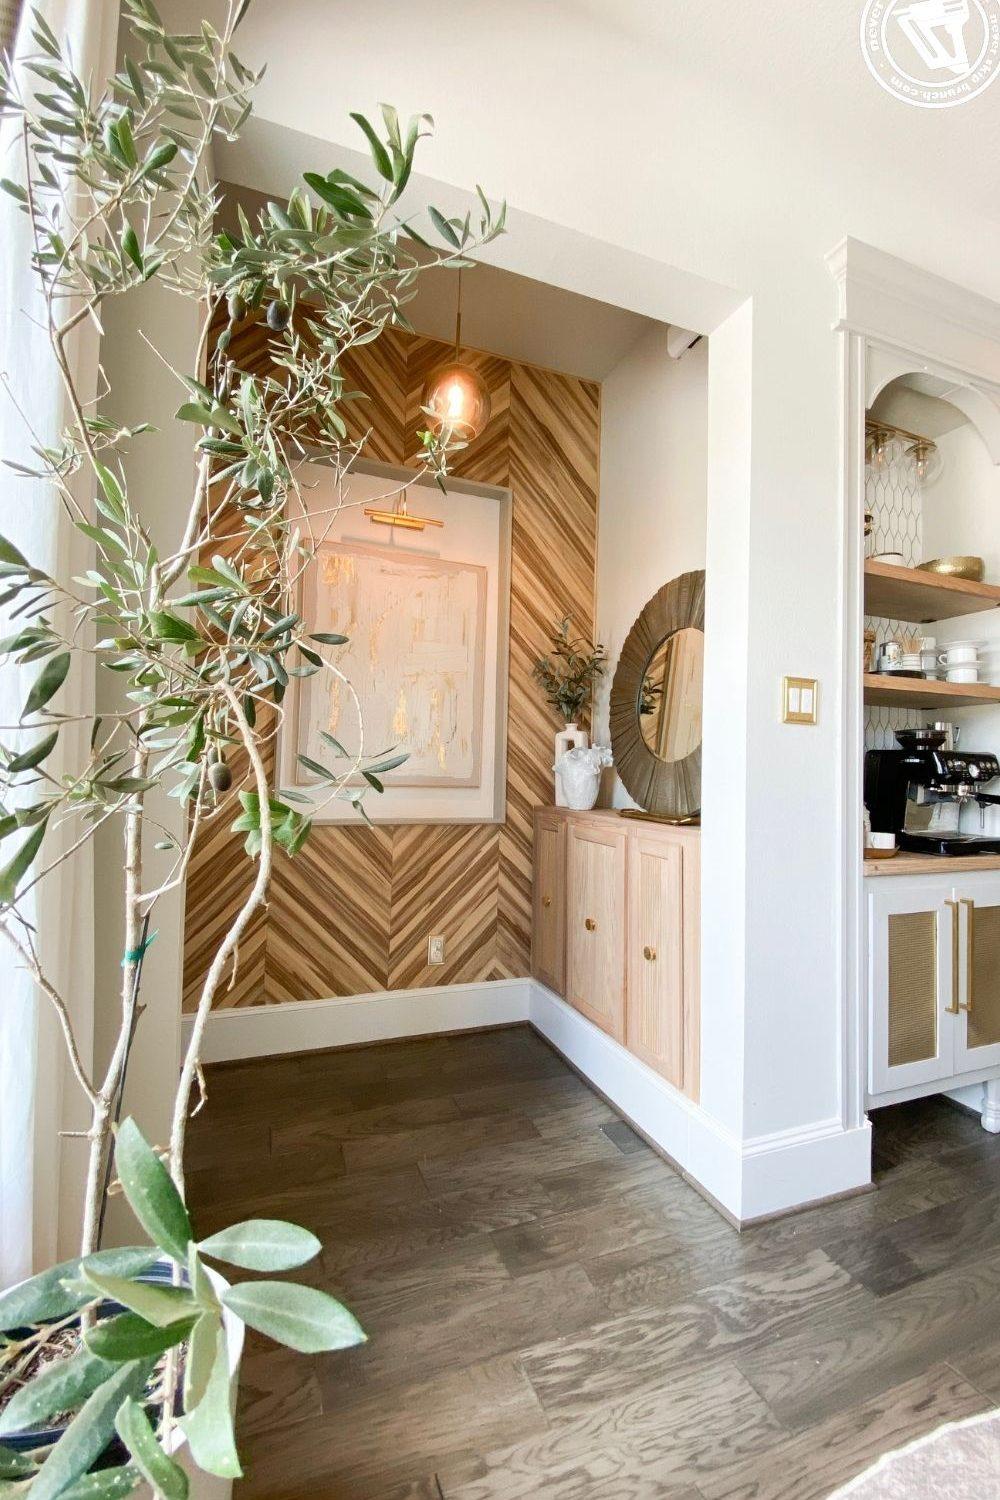 diy built ins with pre-made cabinet, a tutorial featured by top US home DIY blogger, Never Skip Brunch.